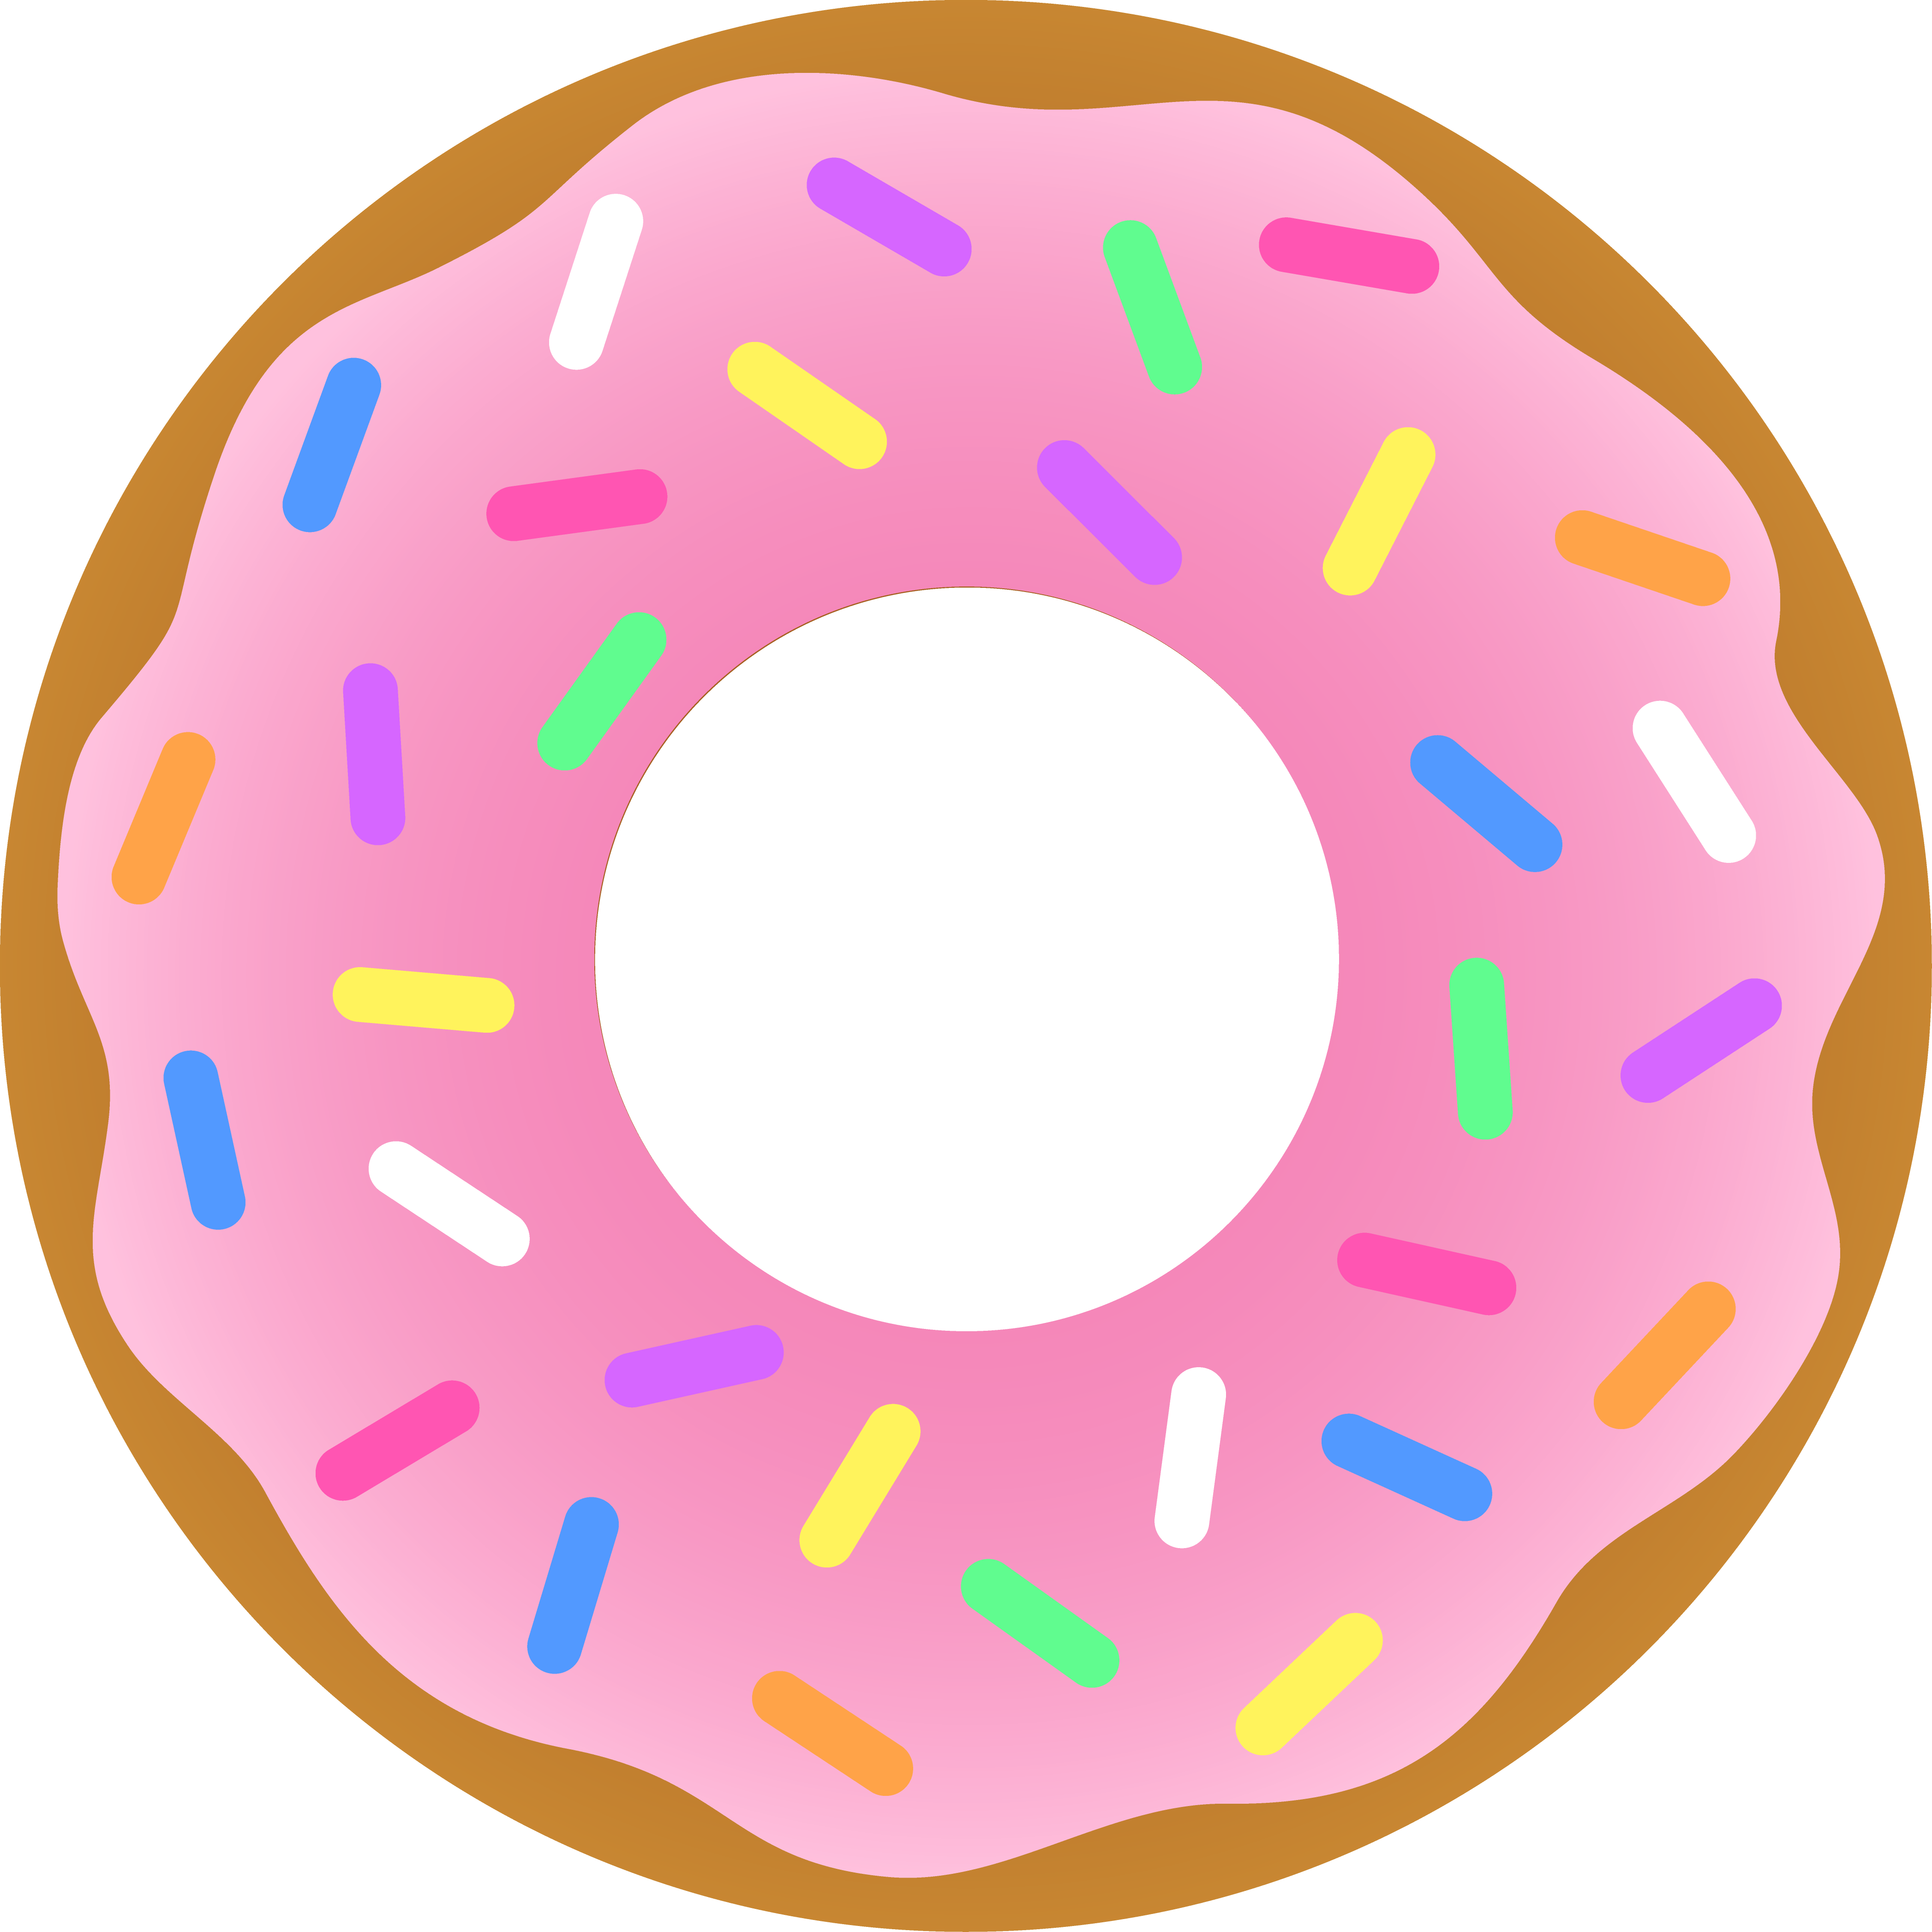 Drawn doughnut And Free coffee%20and%20donuts%20clipart Coffee Images